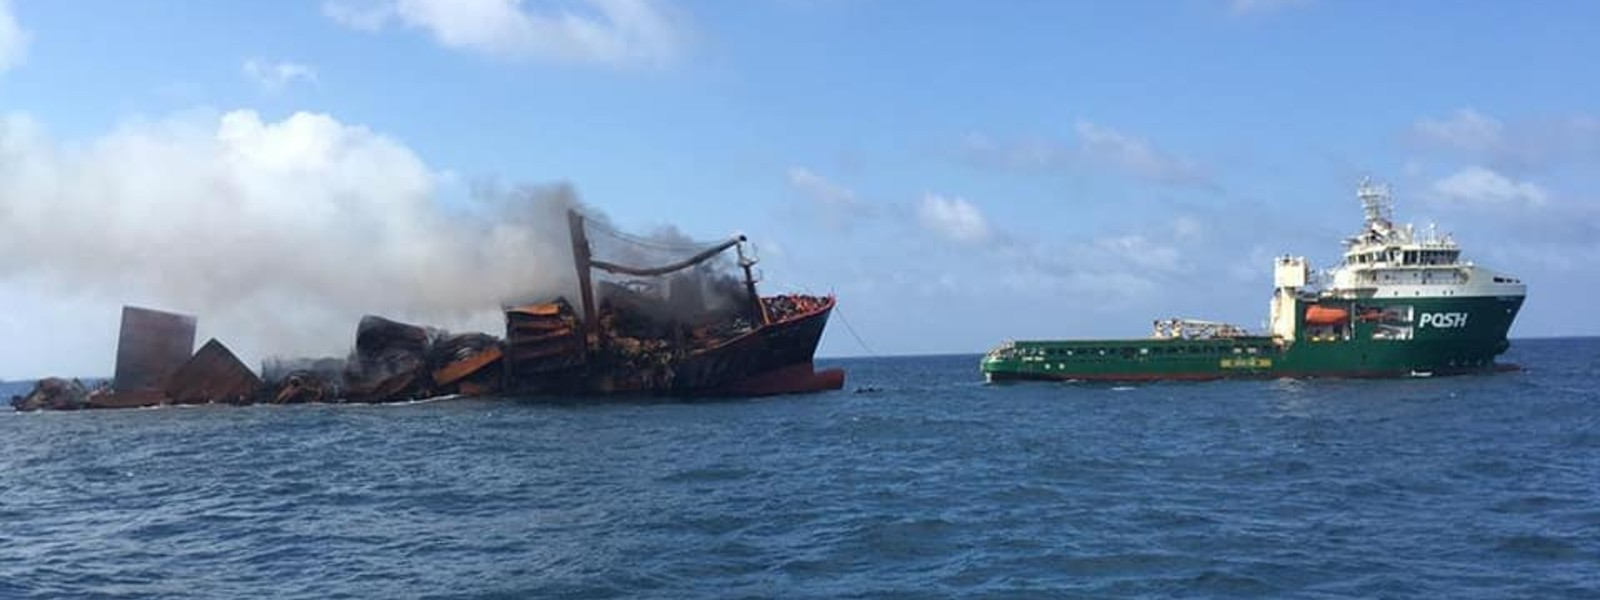 X-PRESS PEARL is sinking and it is being towed into deep seas